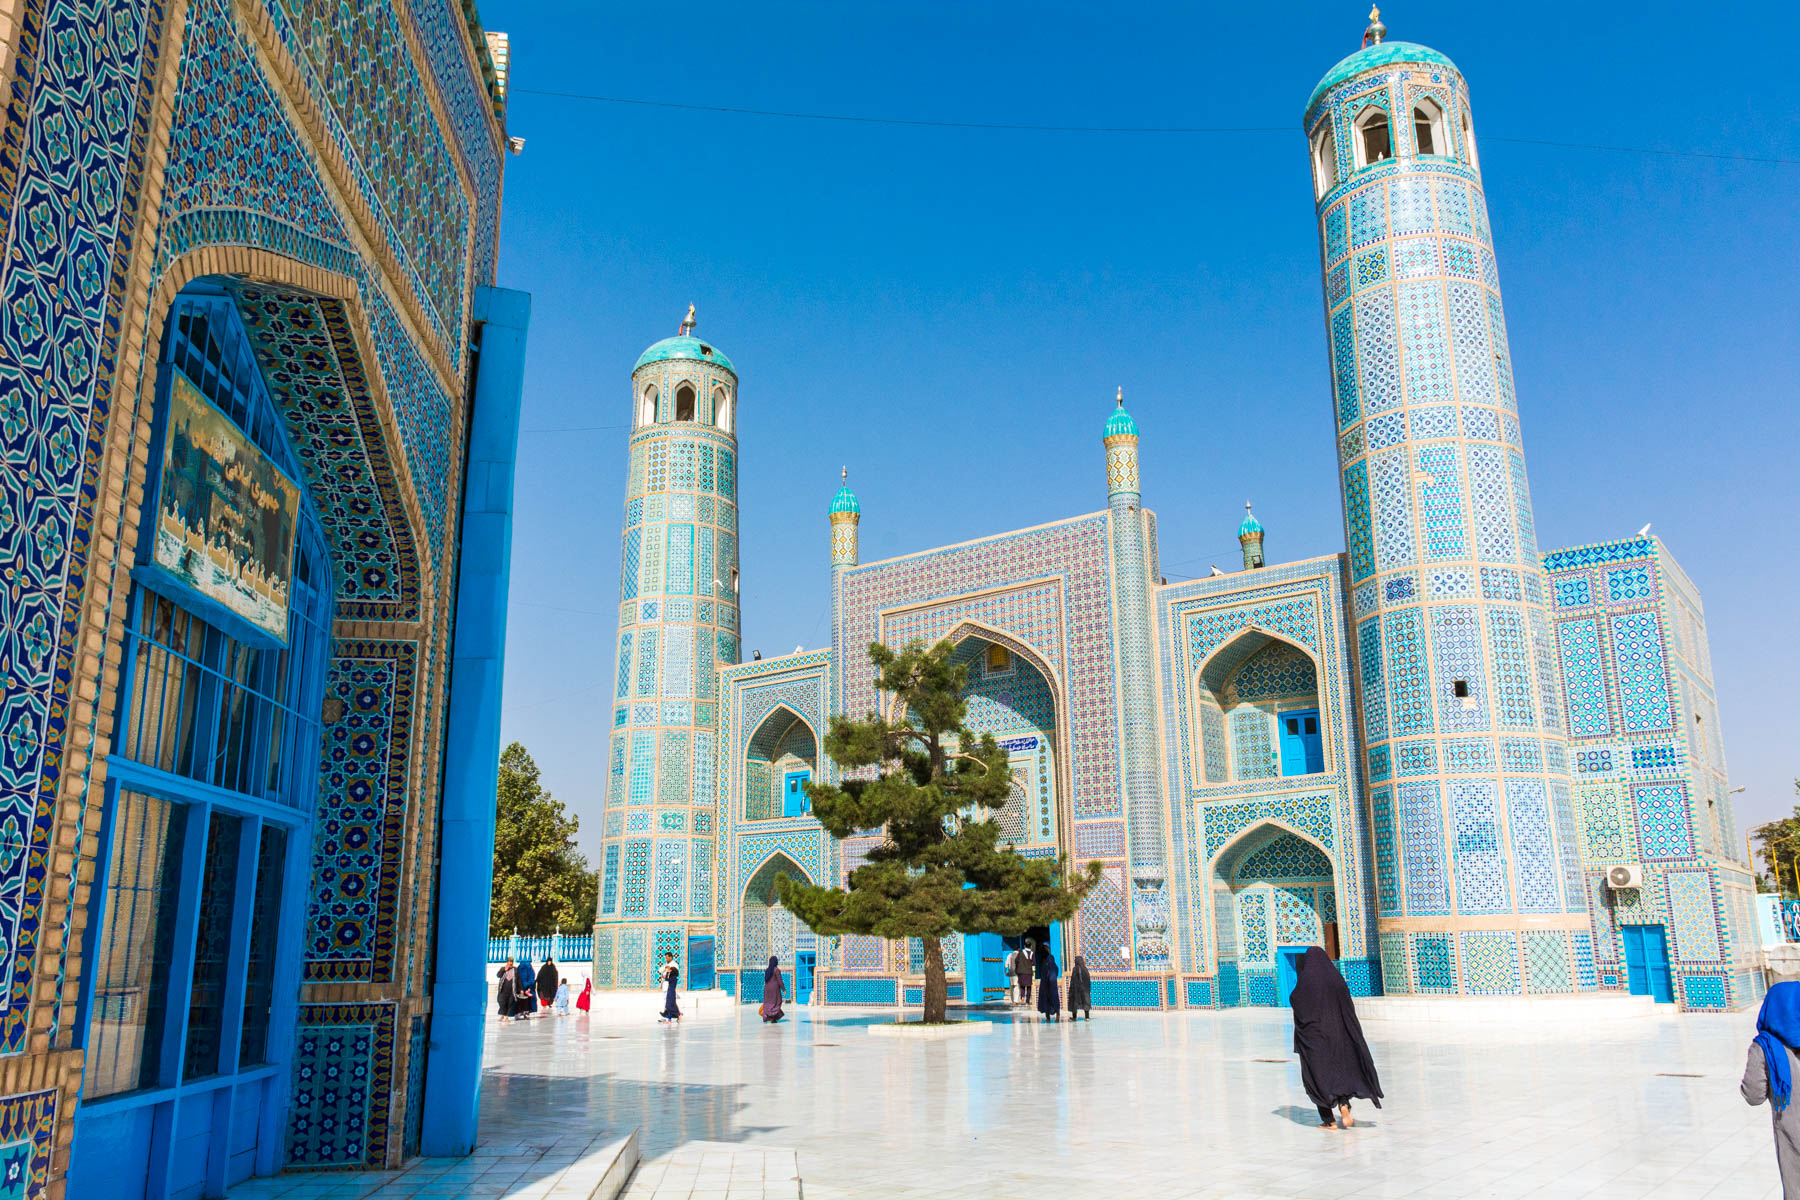 The Ultimate Afghanistan Travel Guide - The shrine of Hazrat Ali in Mazar-i-Sharif - Lost With Purpose